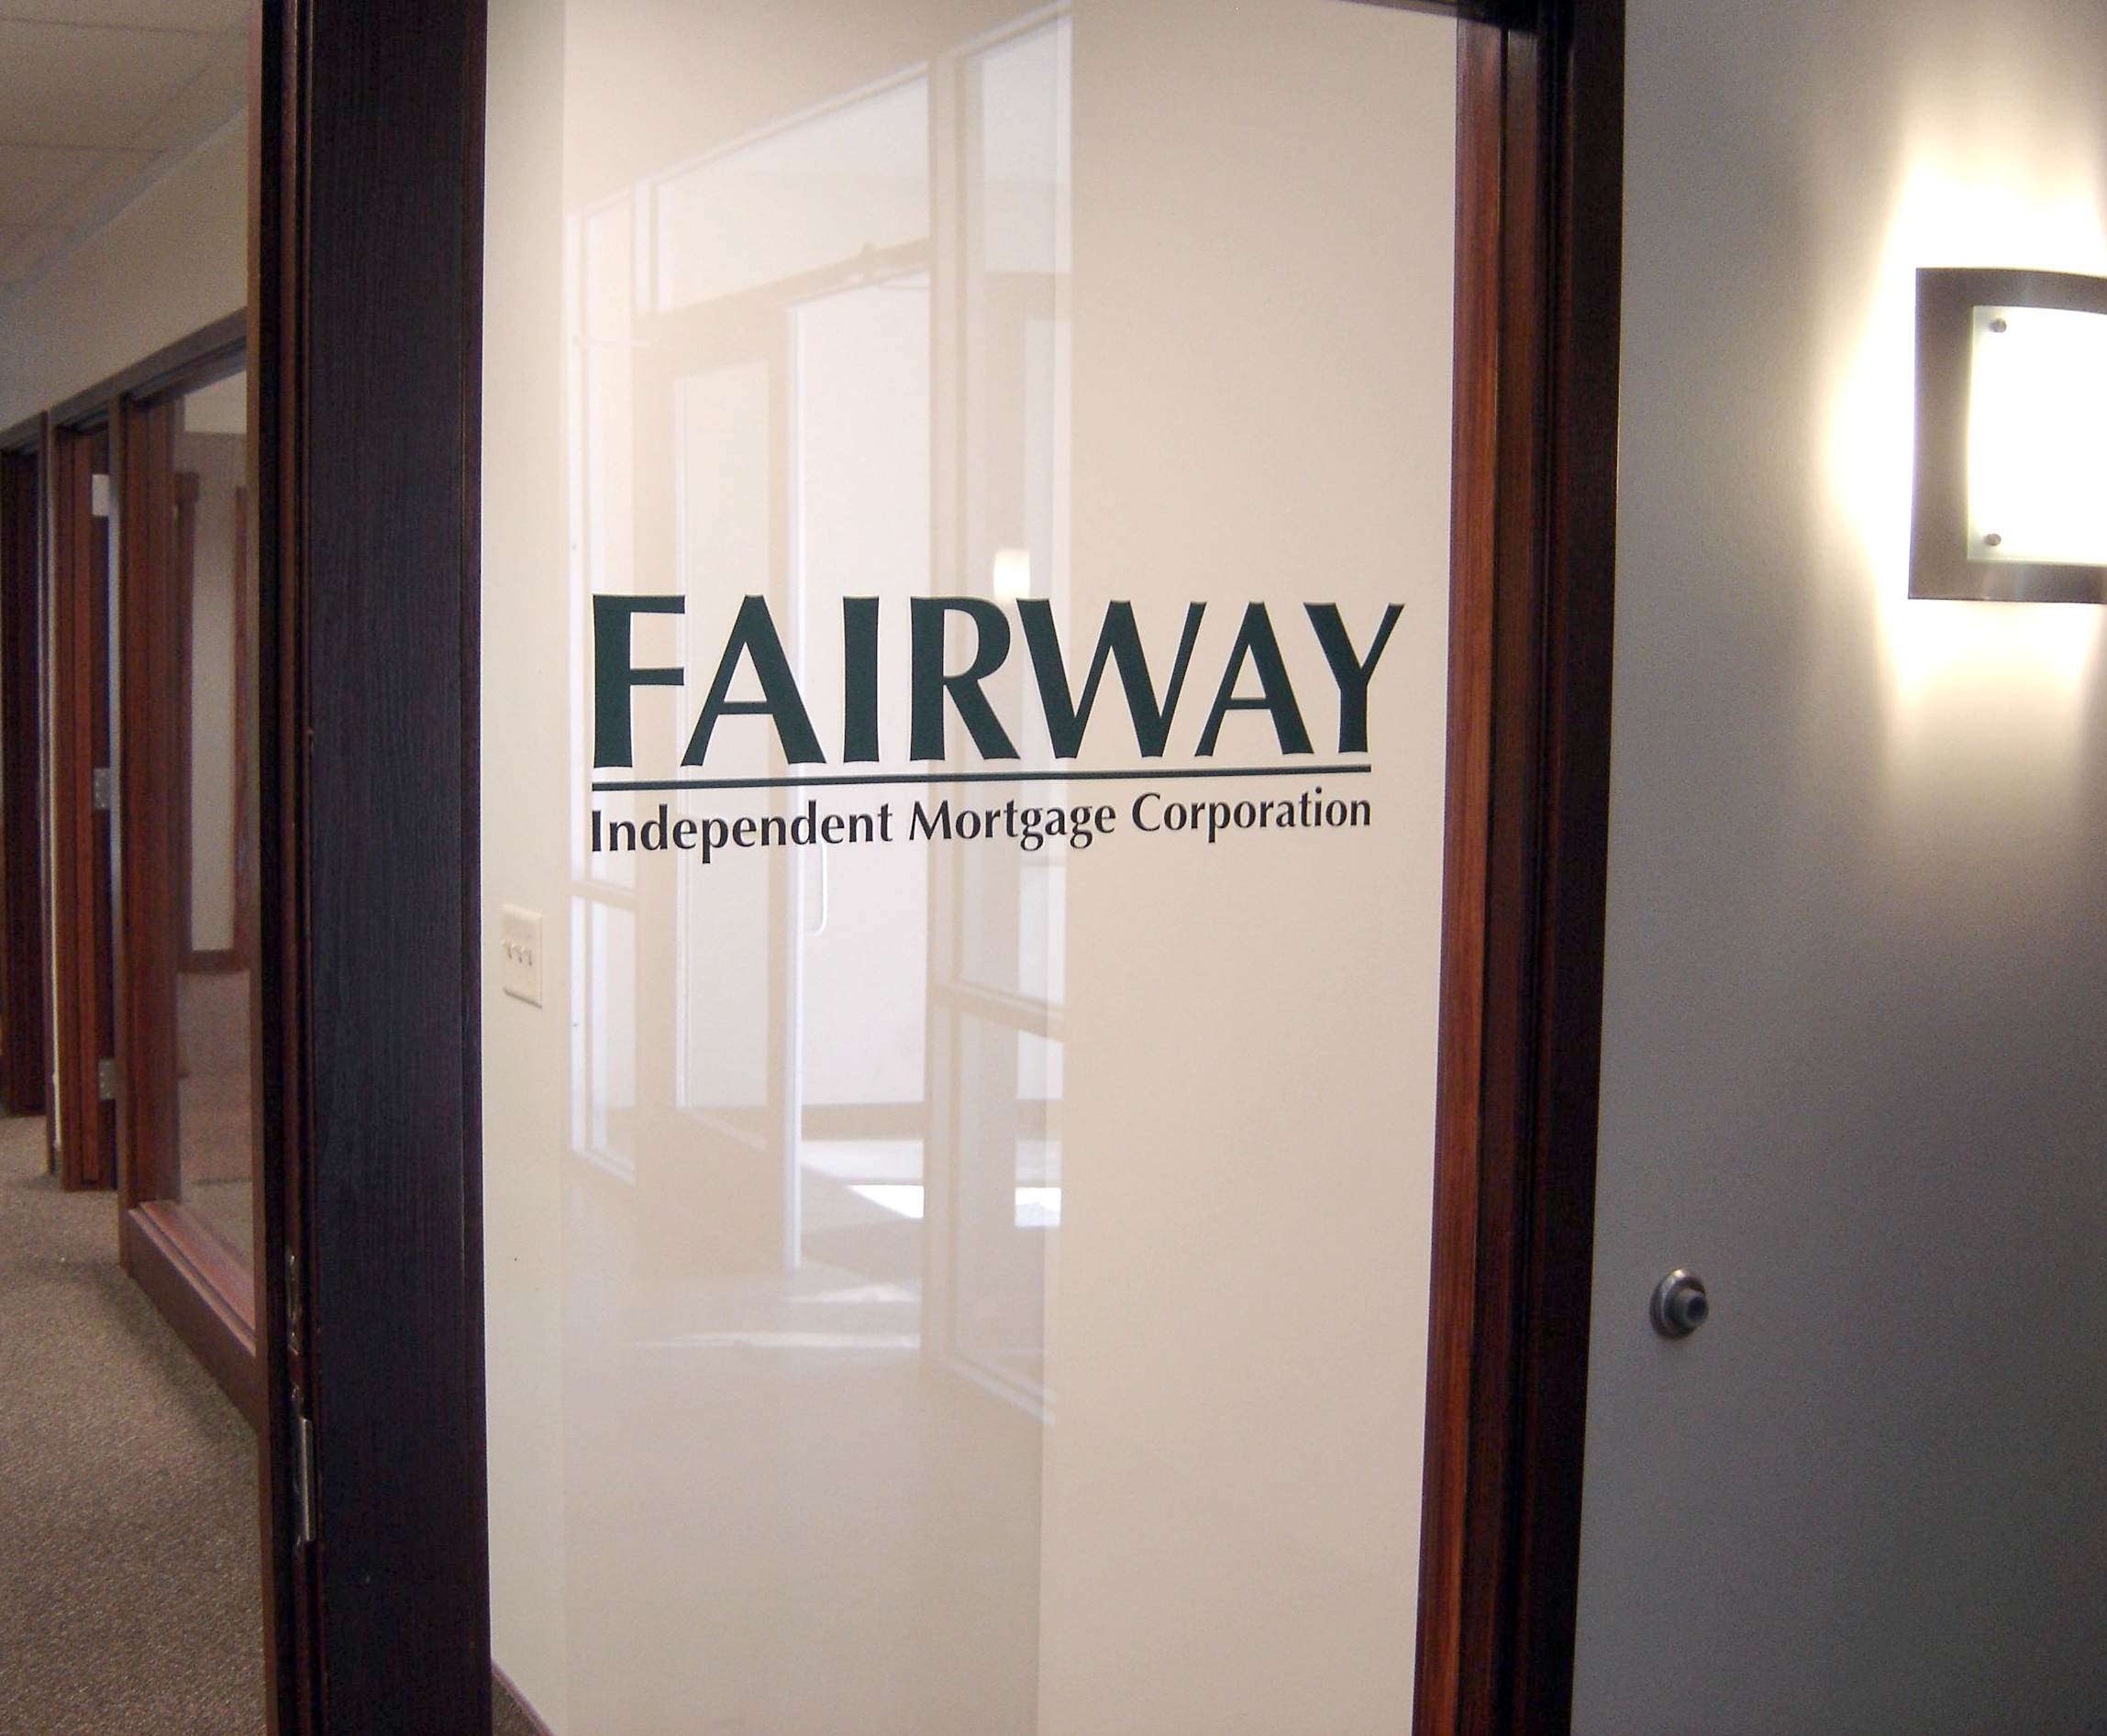 Fairway Indépendant Mortgage Company